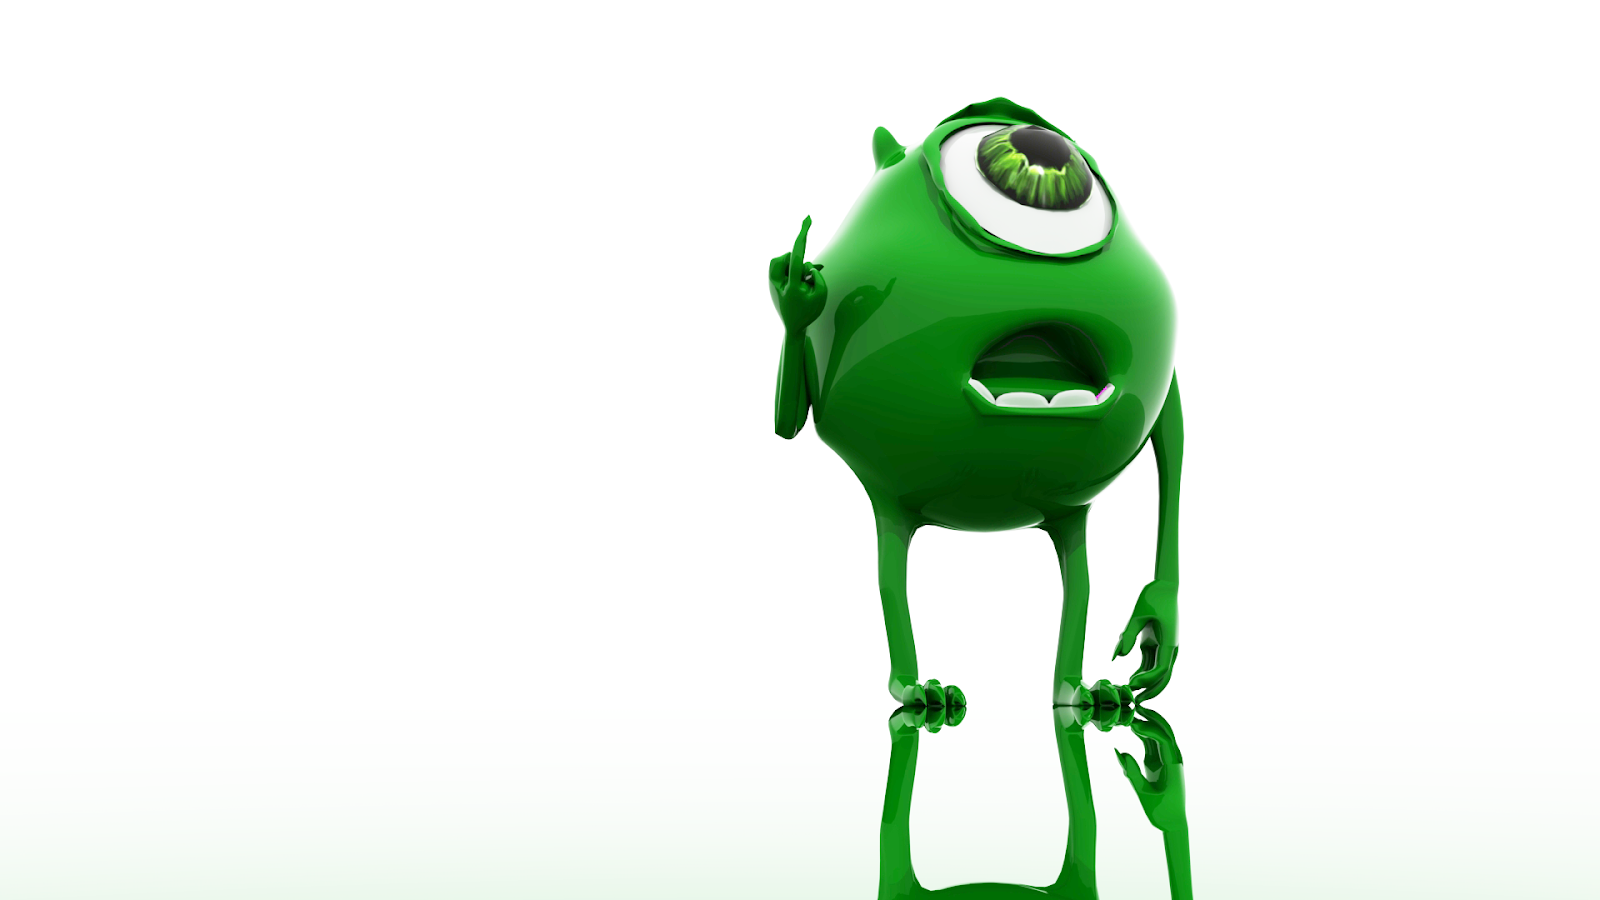 http://www.warrockforfun.com/2020/05/mike-wazowski-downalod-model-in-maya.html